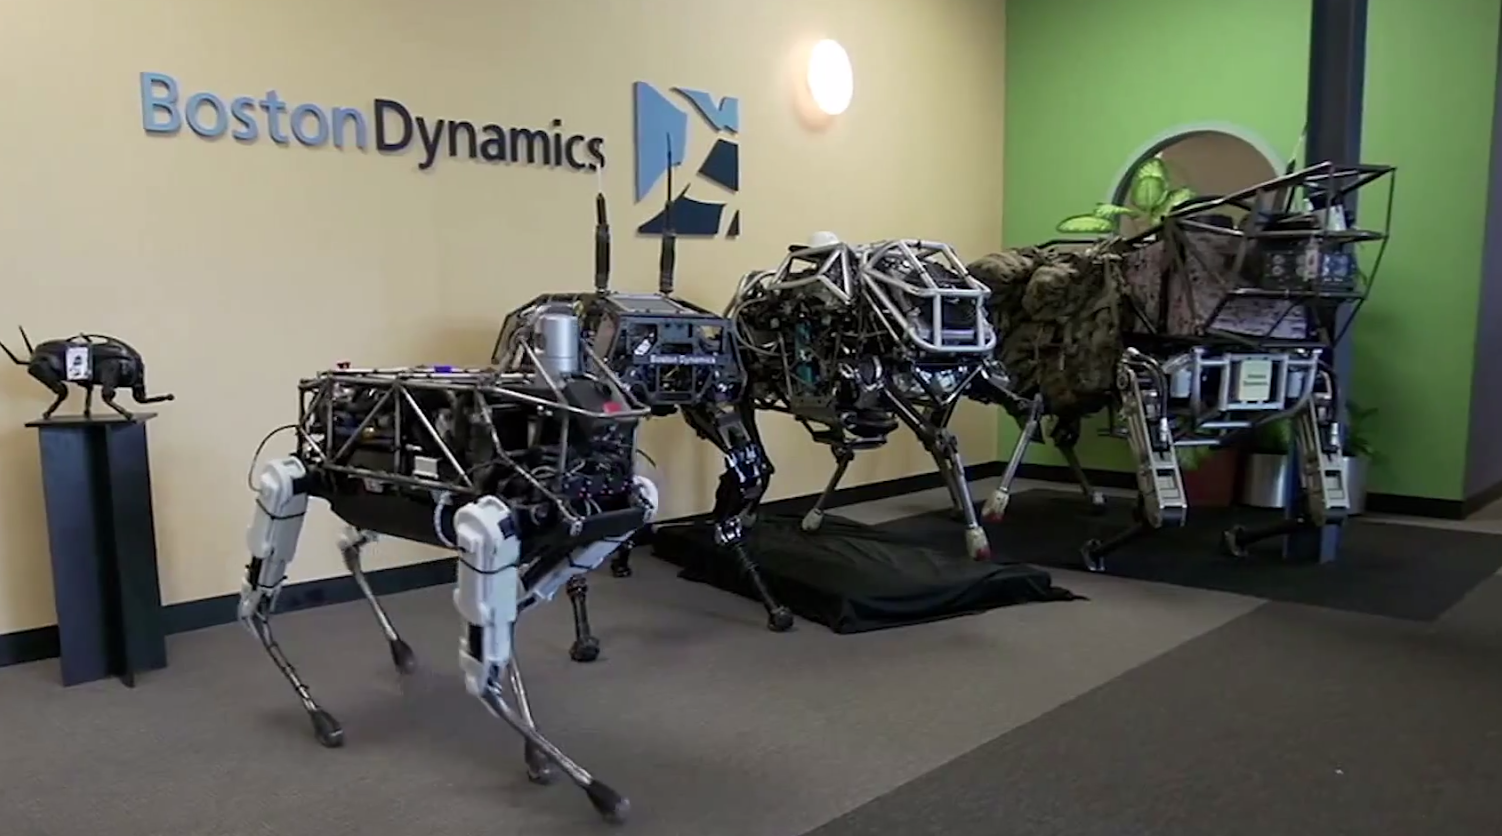 Meet Spot: The new robot dog from Google's Boston DynamicsWe respect your privacy!